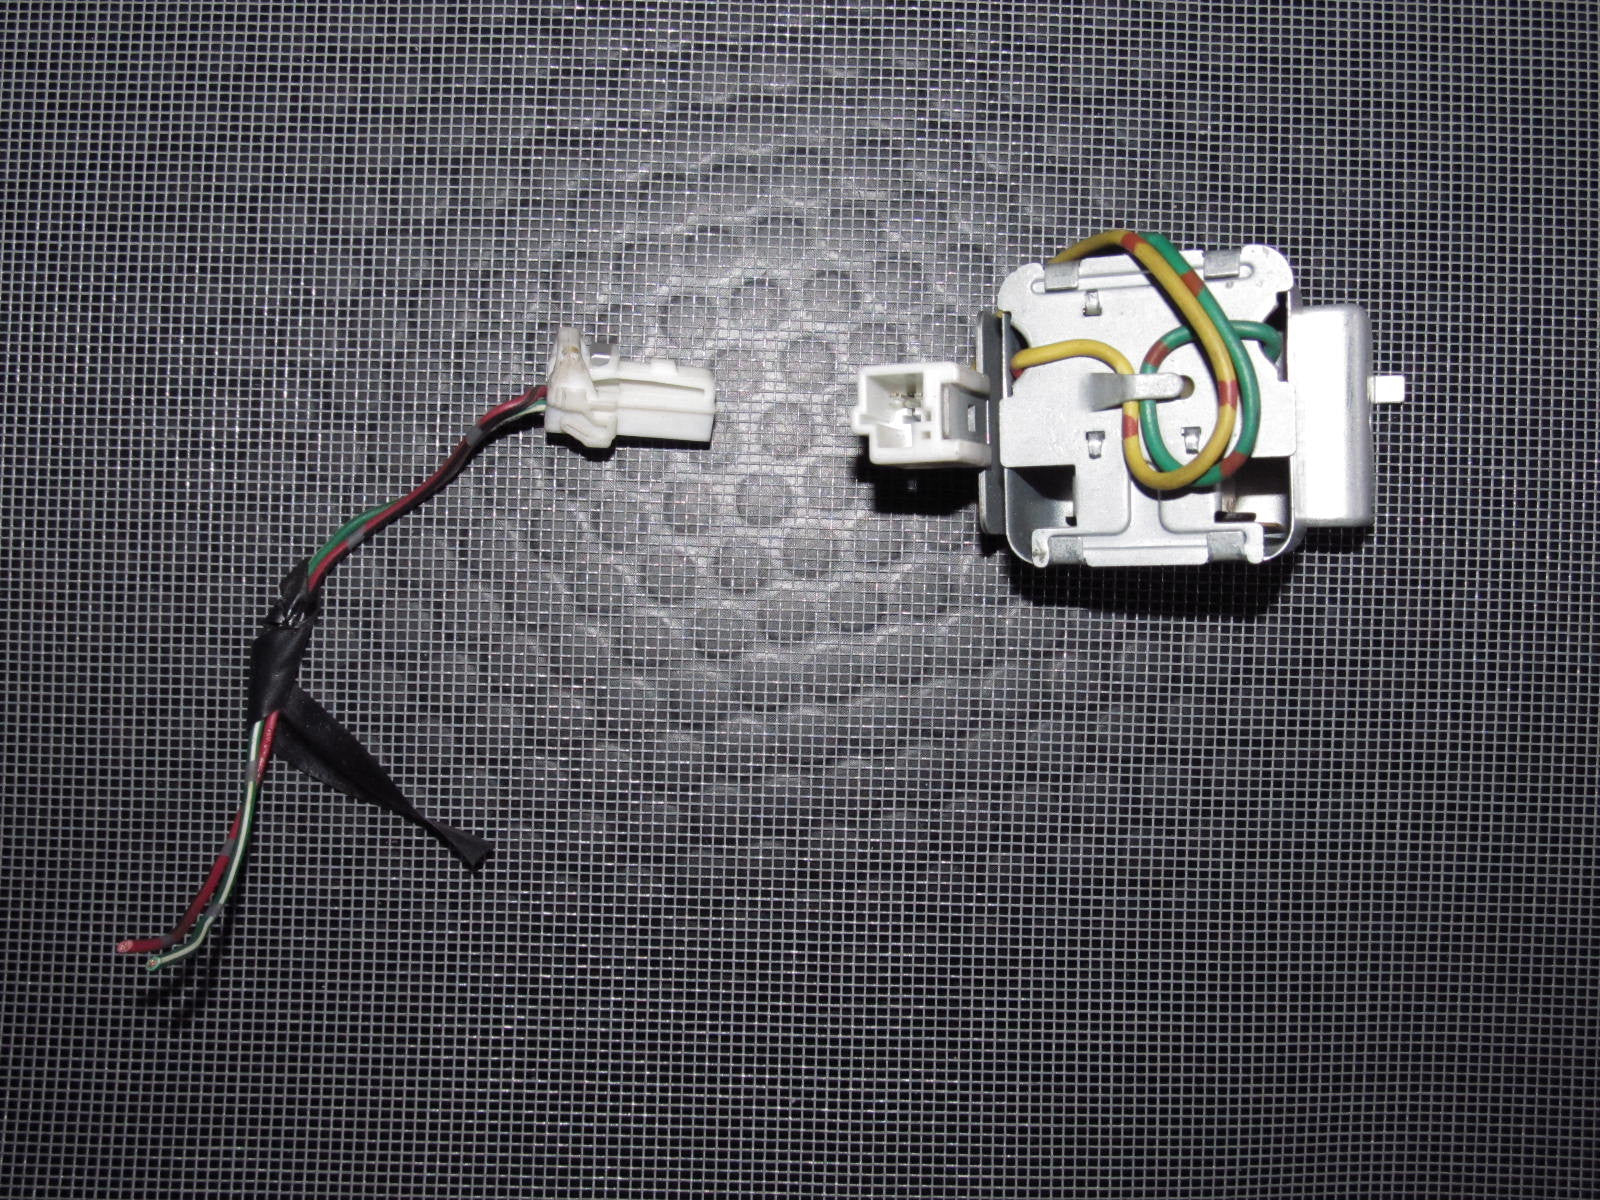 Door Buzzer Relay & 1982-2002 Camaro Door Chime/Buzzer